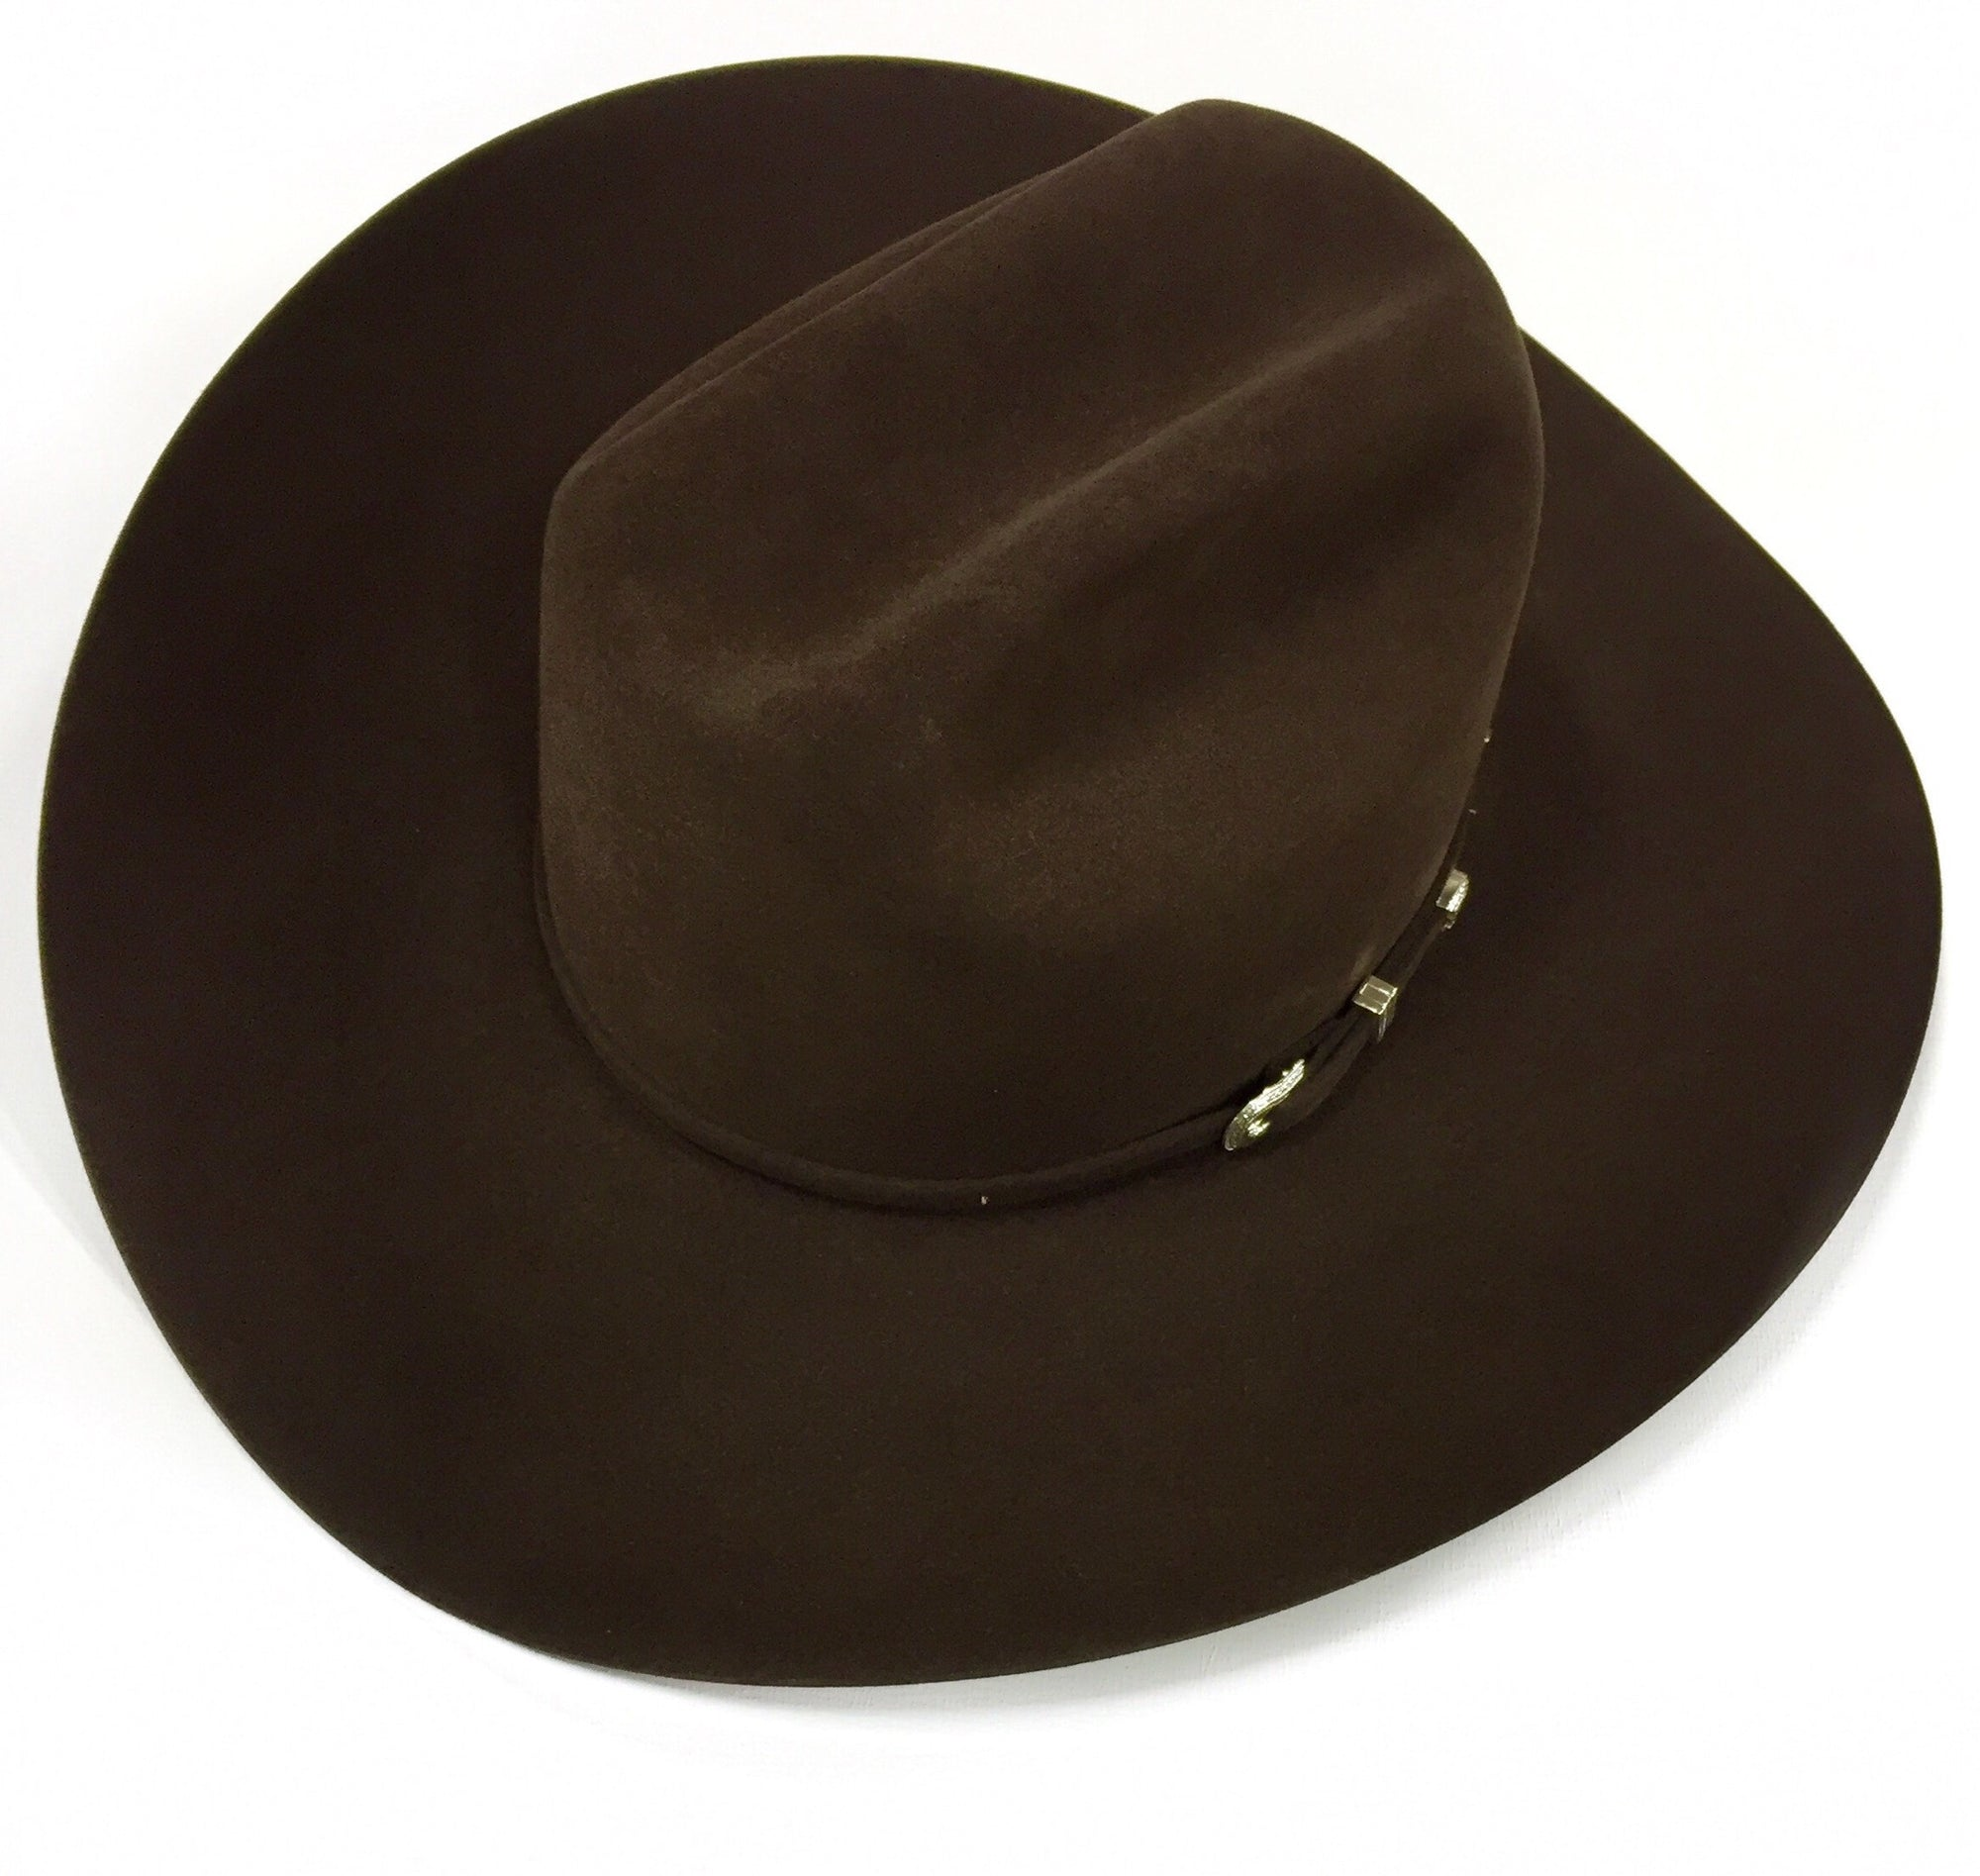 American Hat Co. 7X Chocolate Felt Hat